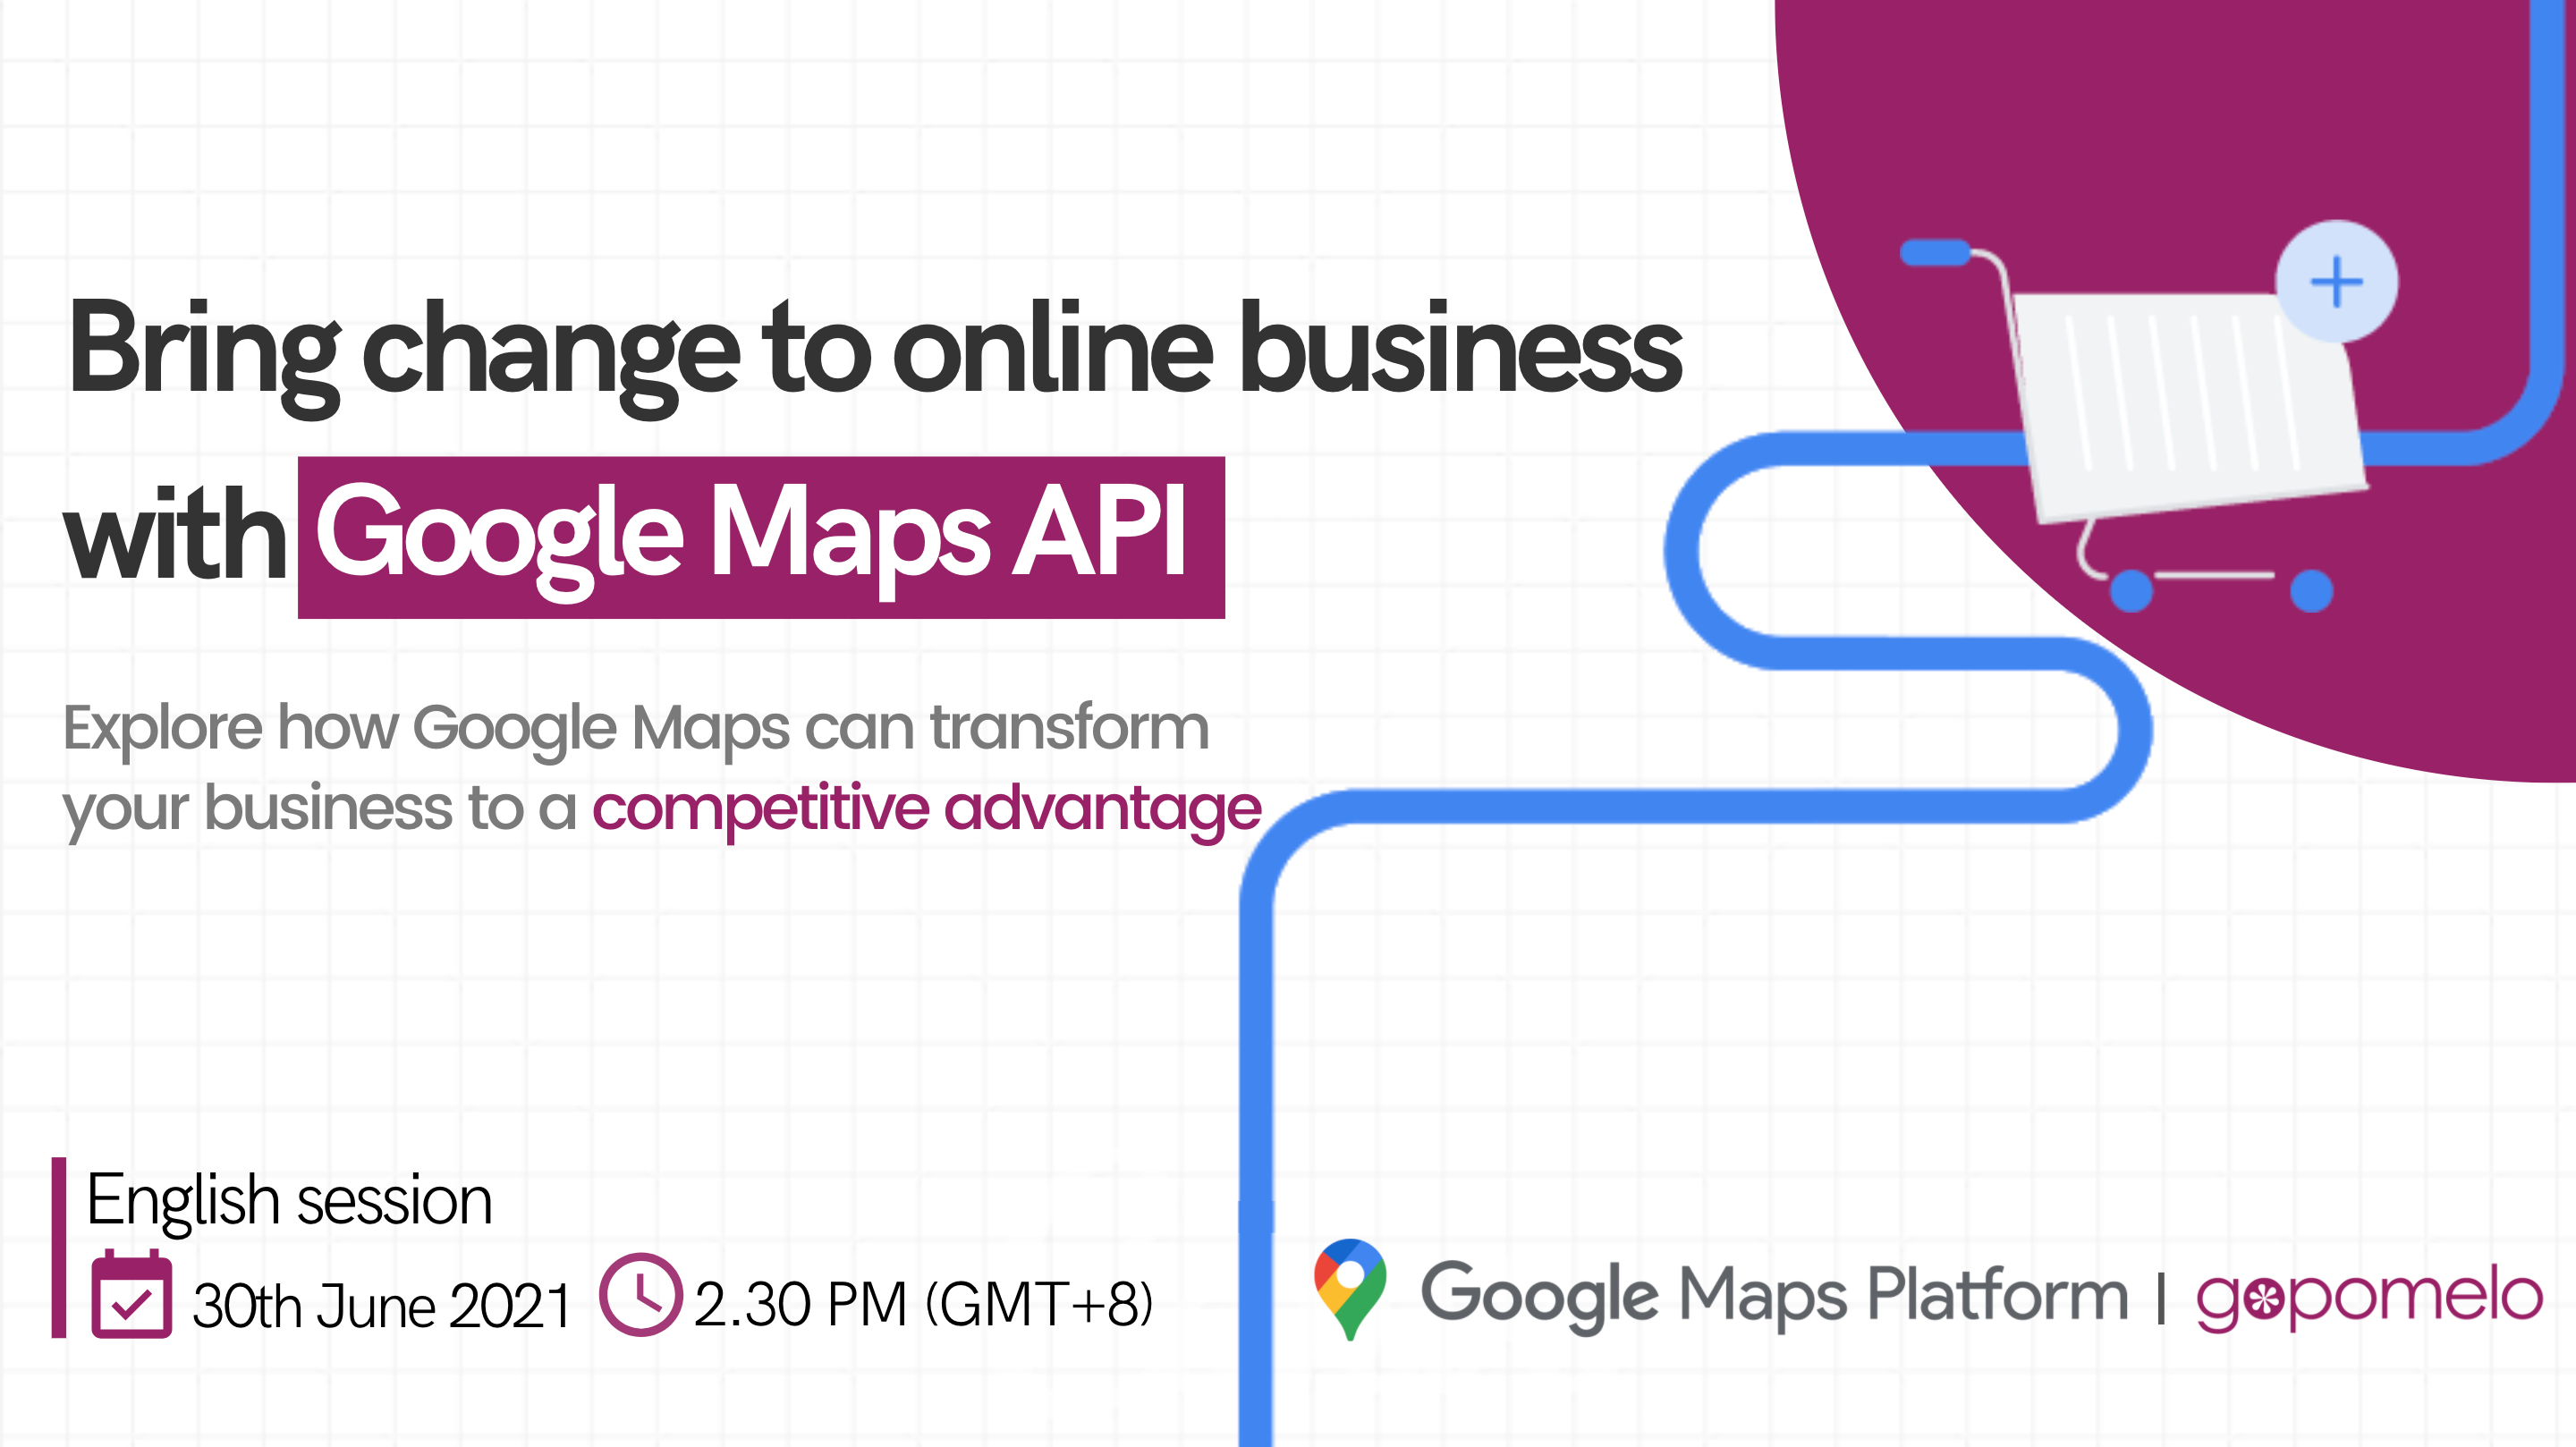 Maps for online business